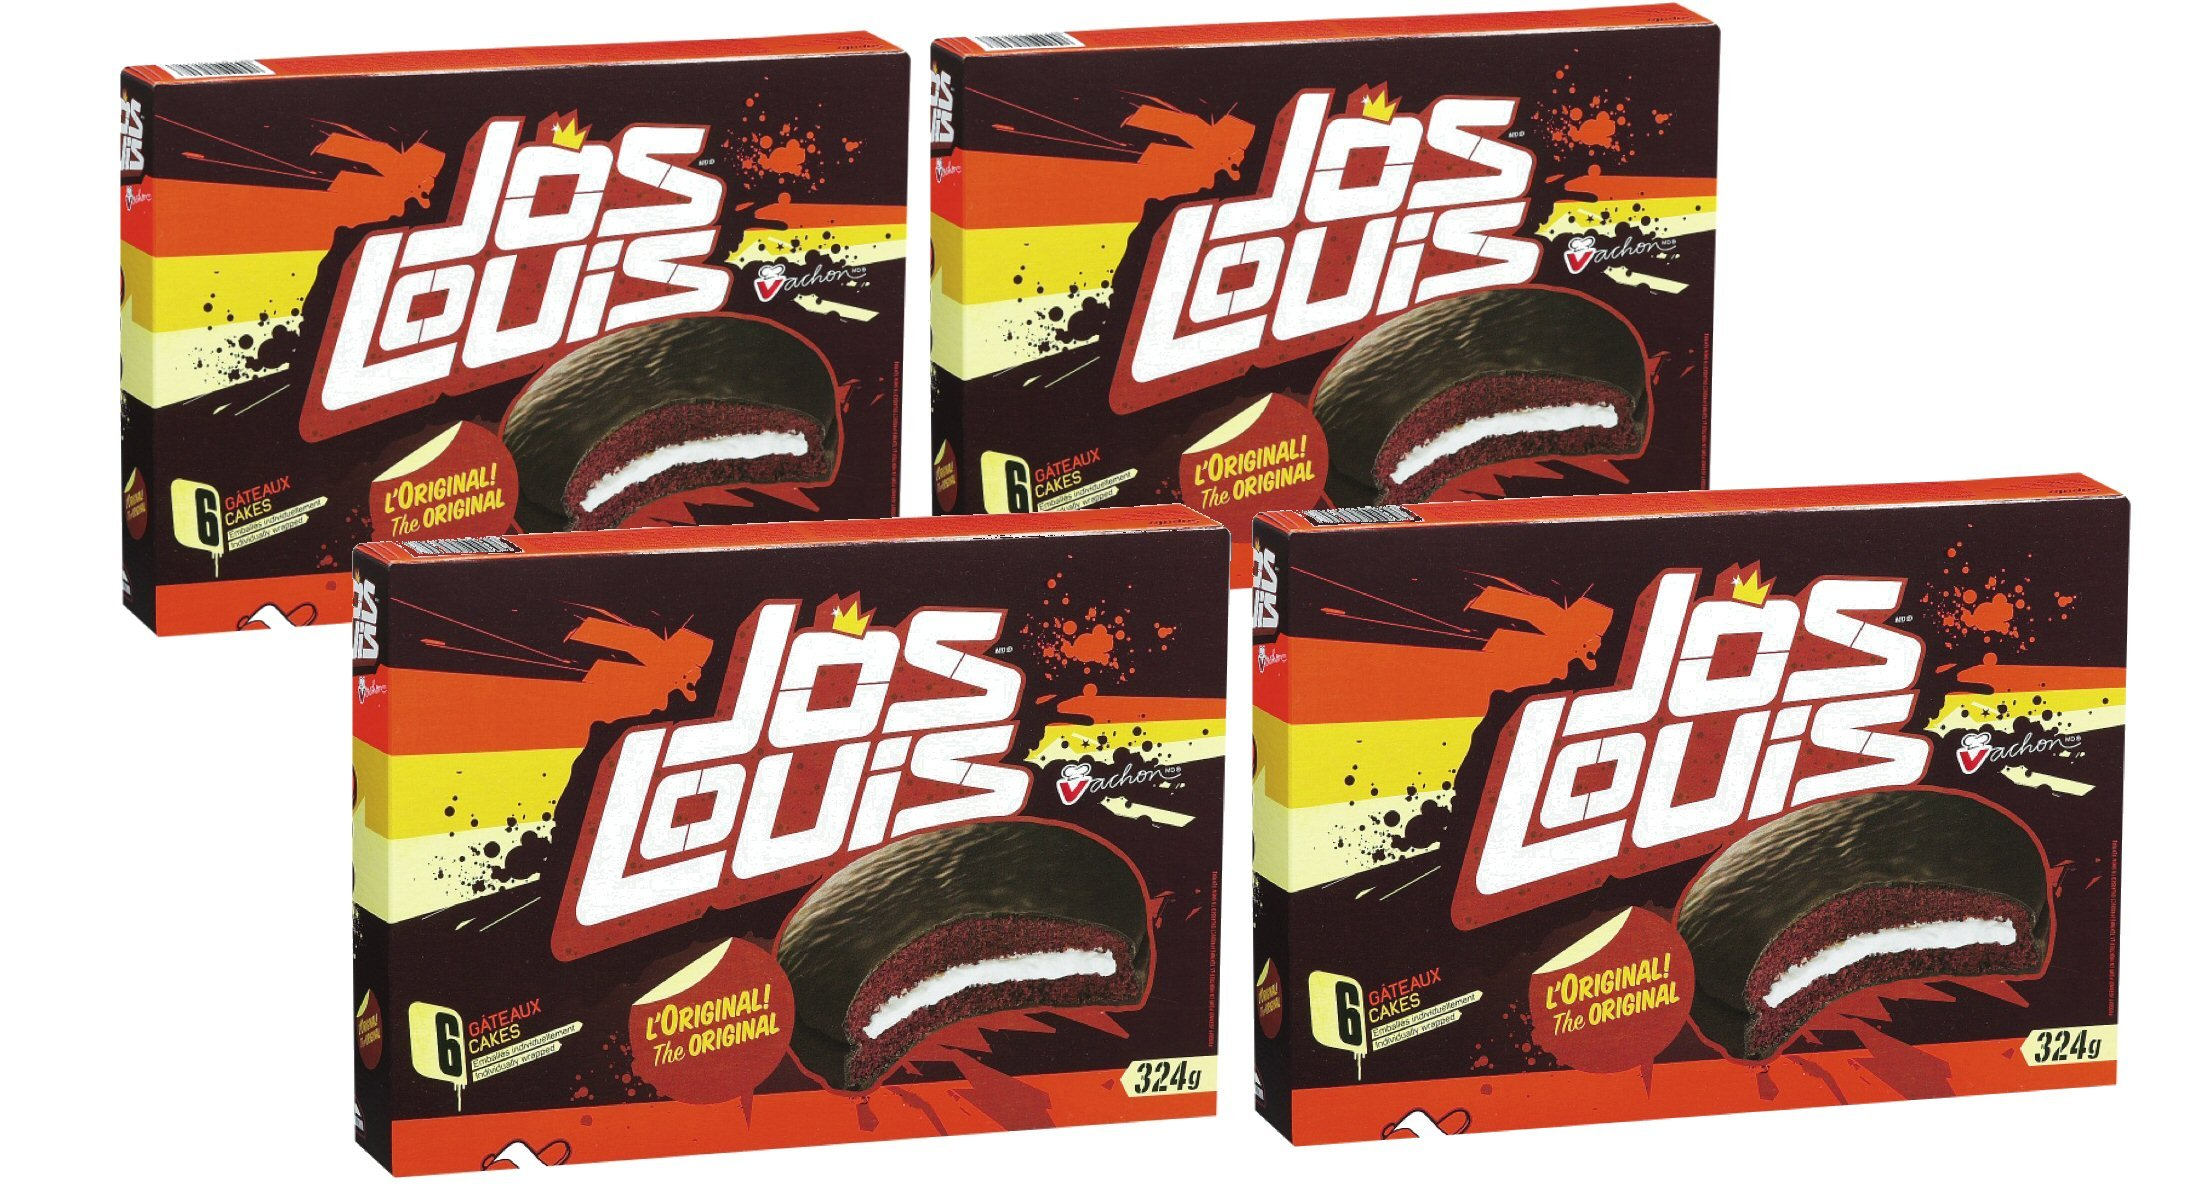 Vachon original JOS LOUIS cakes pack of 4 {Imported from Canada} by VACHON